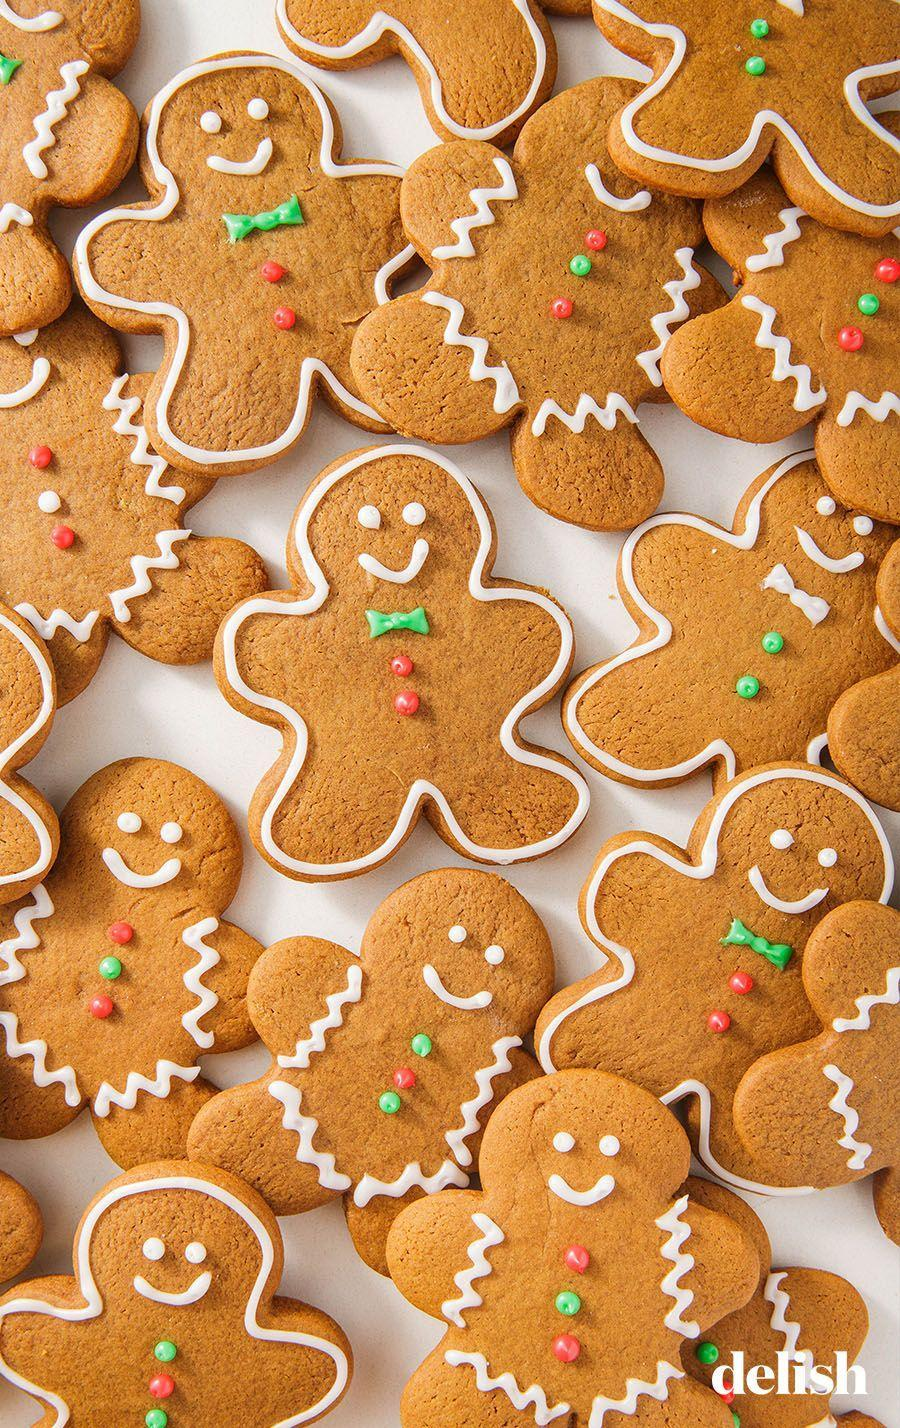 """<p>The classic holiday cookie. These cute little cookies are perfect gifting, plus the dough makes a lot so you can give to all your friends and family!</p><p>Get the recipe from <a href=""""https://www.delish.com/cooking/recipe-ideas/a50468/gingerbread-cookies-recipe/"""" rel=""""nofollow noopener"""" target=""""_blank"""" data-ylk=""""slk:Delish"""" class=""""link rapid-noclick-resp"""">Delish</a>.</p>"""